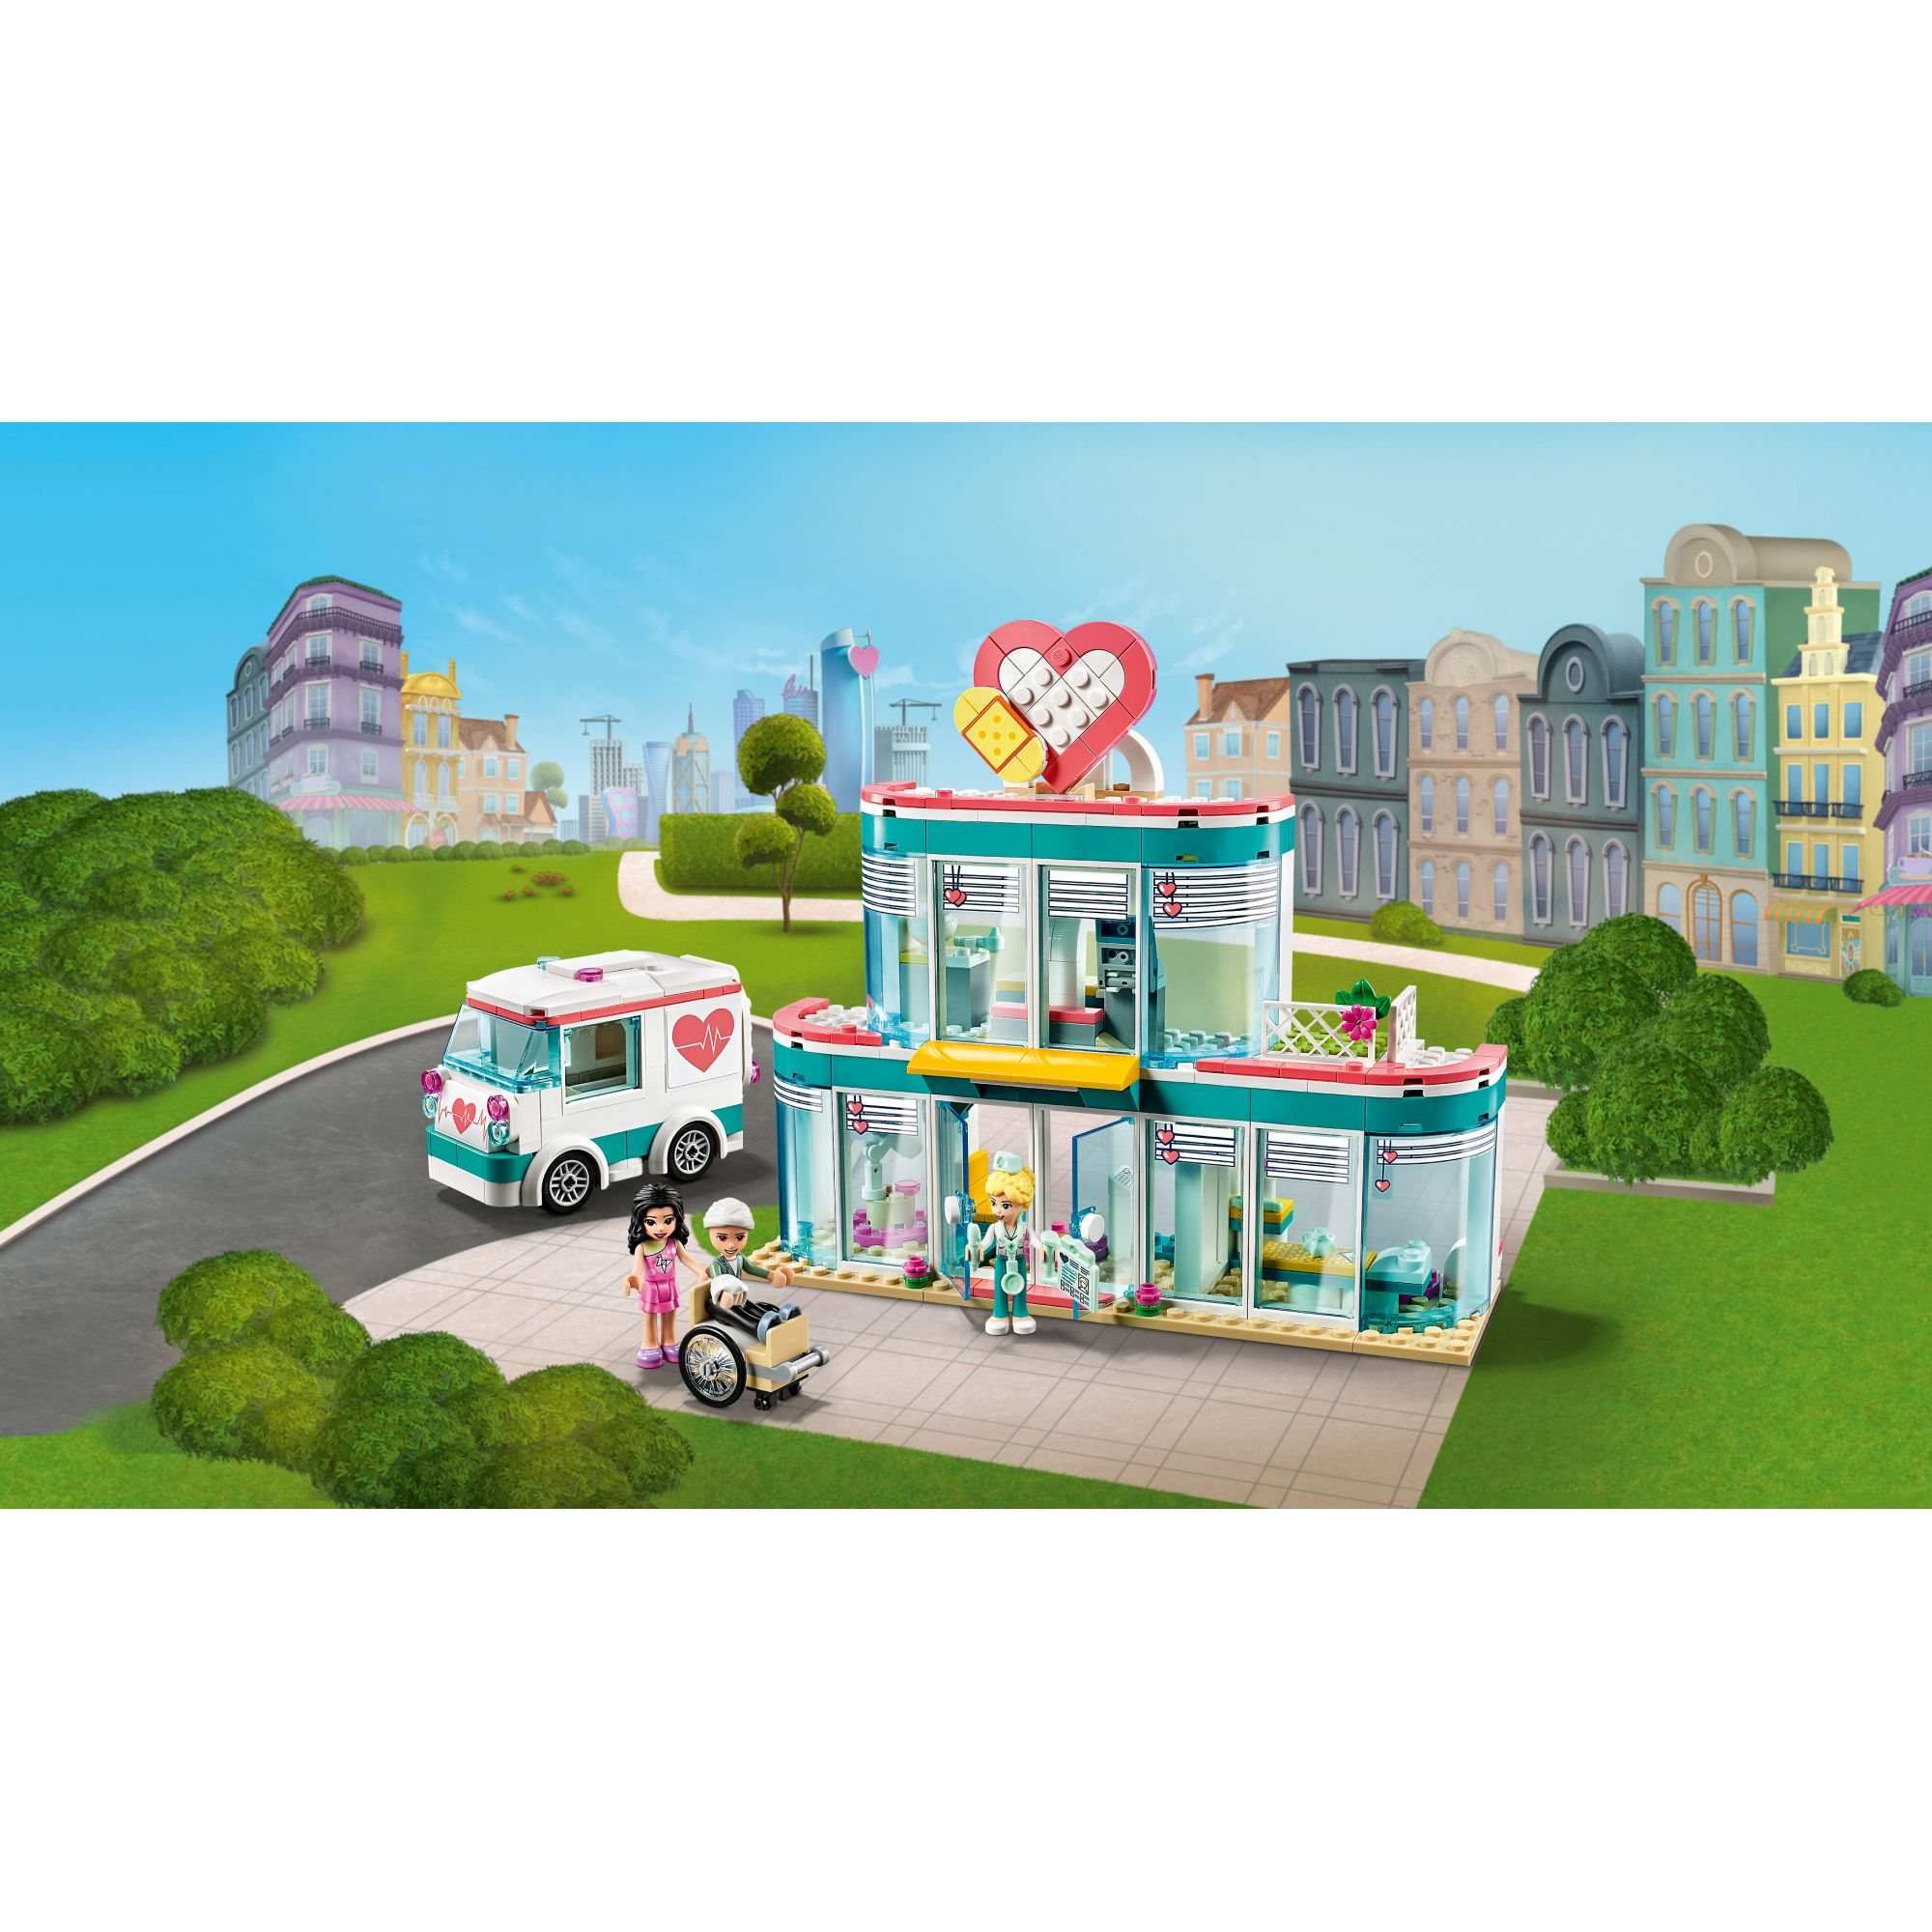 LEGO FRIENDS  LEGO Friends L'ospedale di Heartlake City - 41394